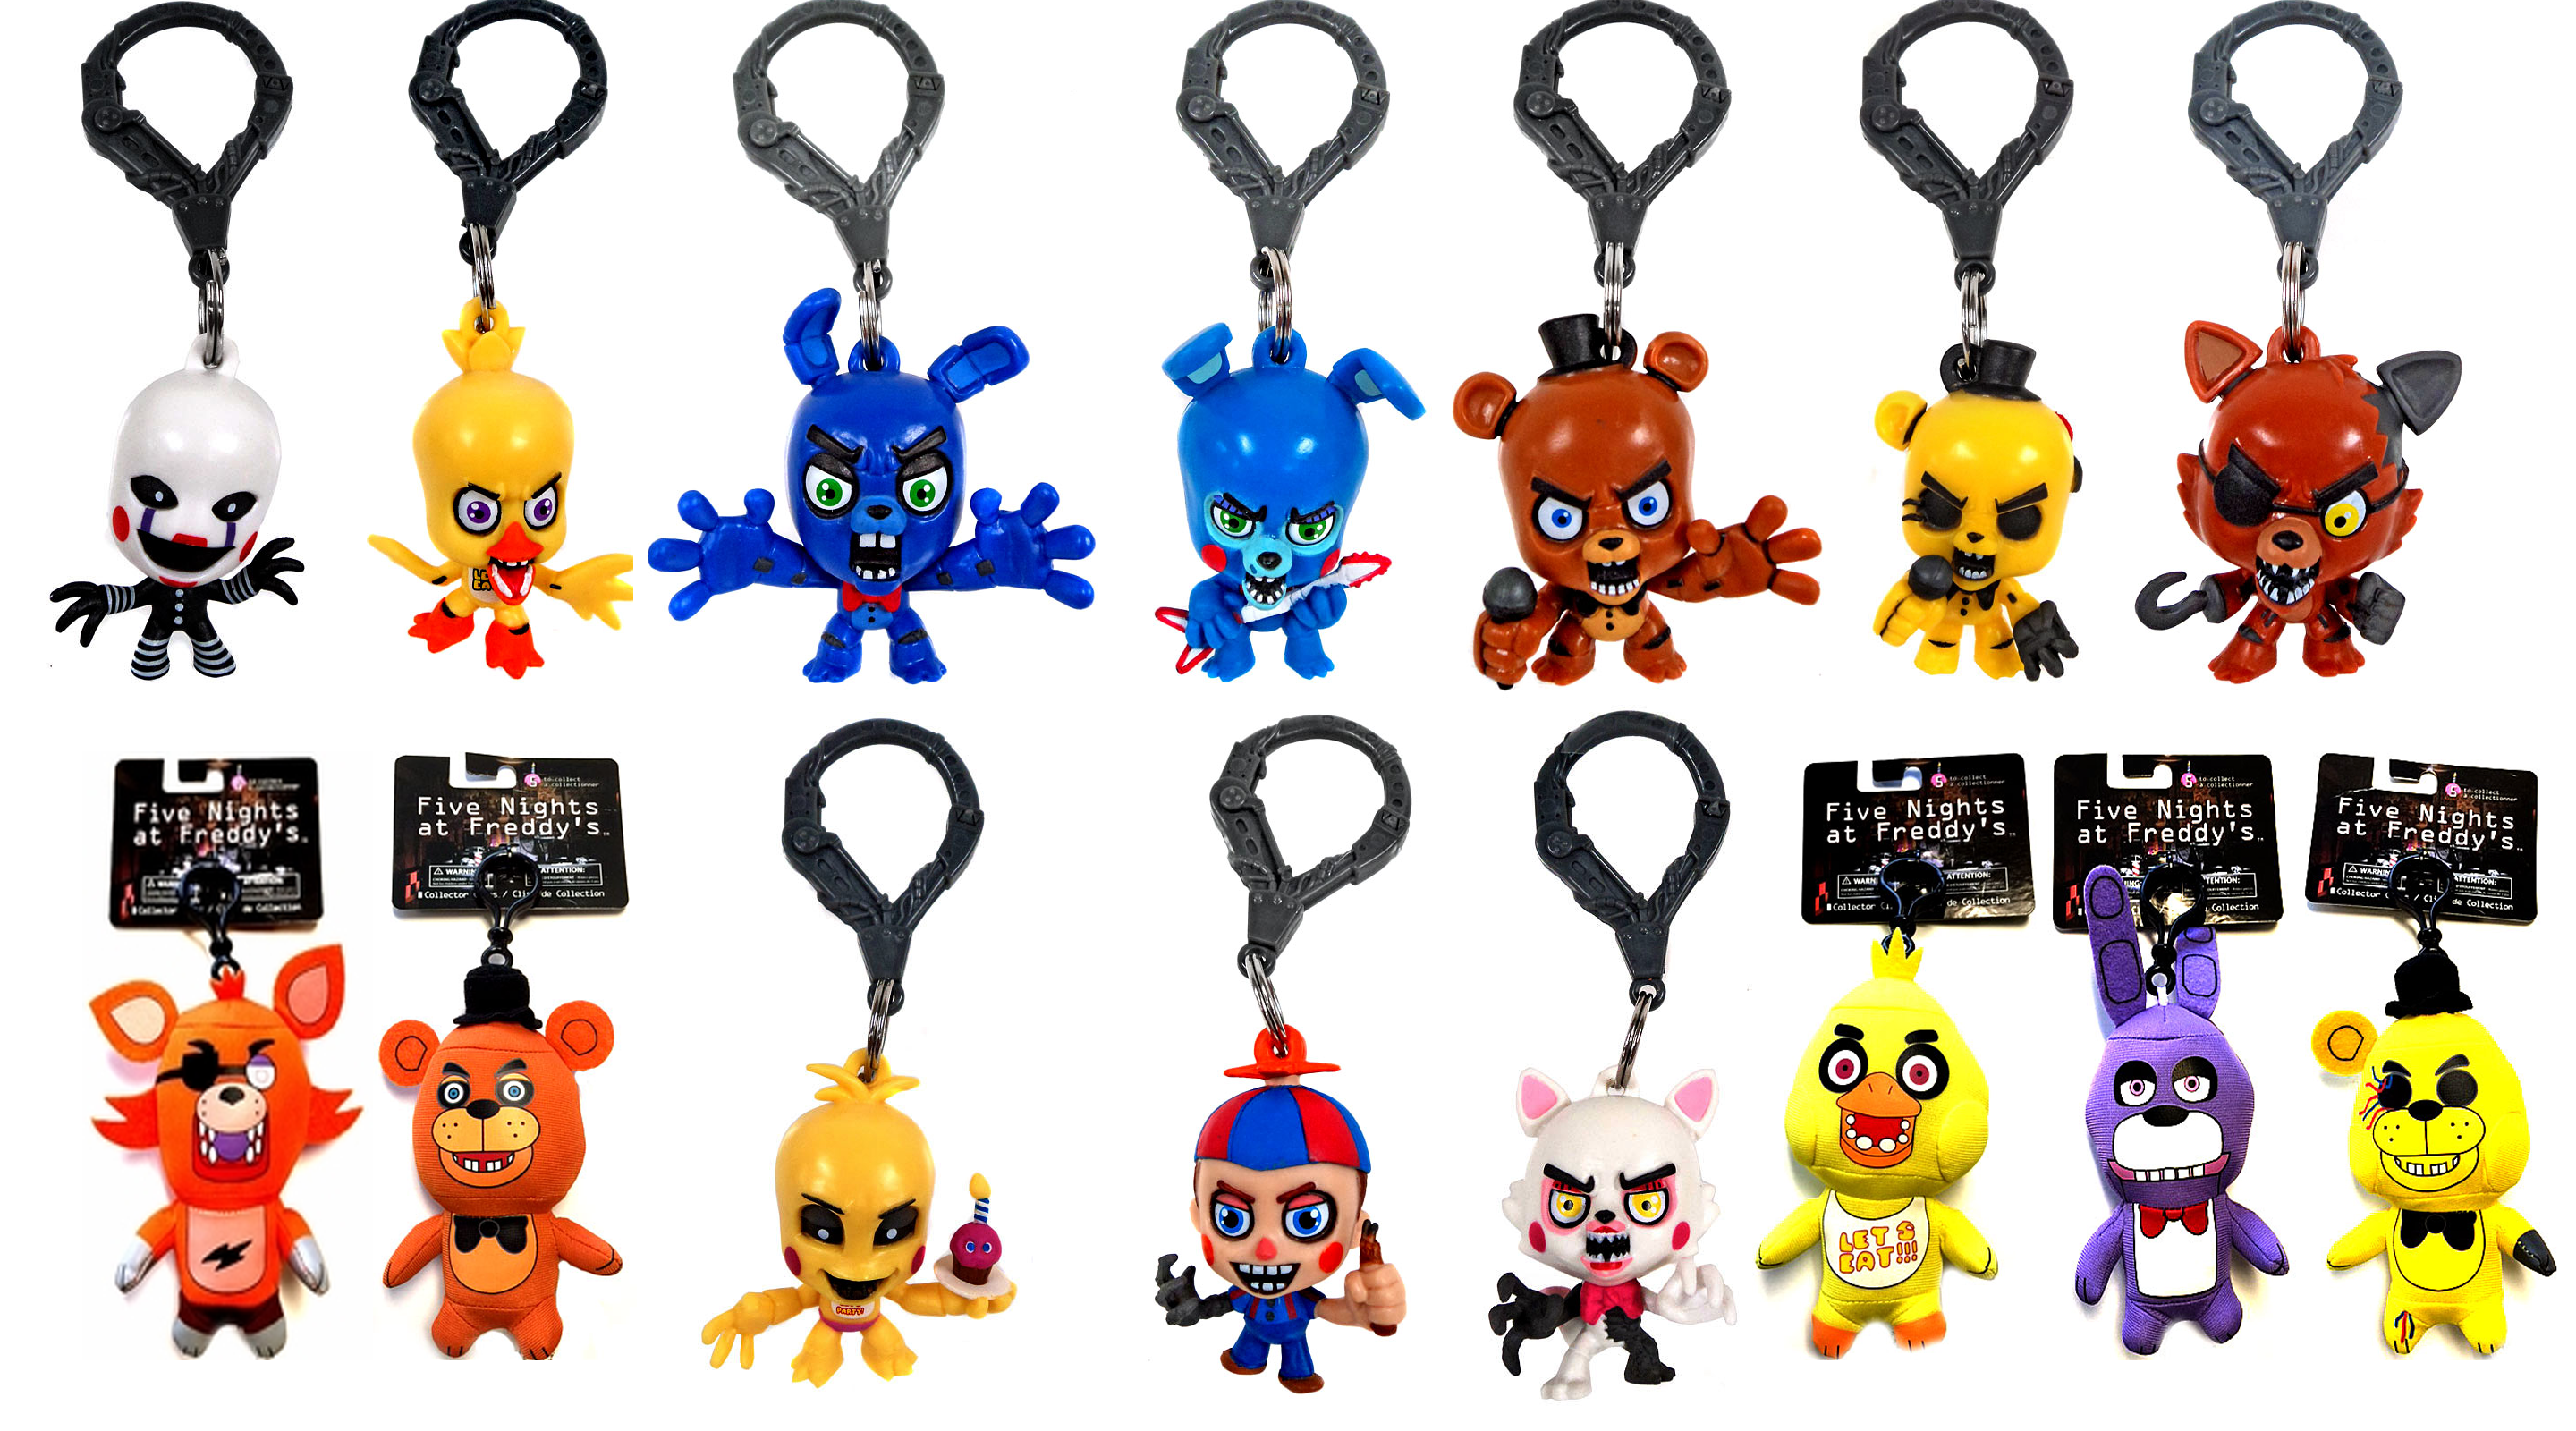 Here S All Of Ucc S Fnaf Merchandise Minus The Sanshee